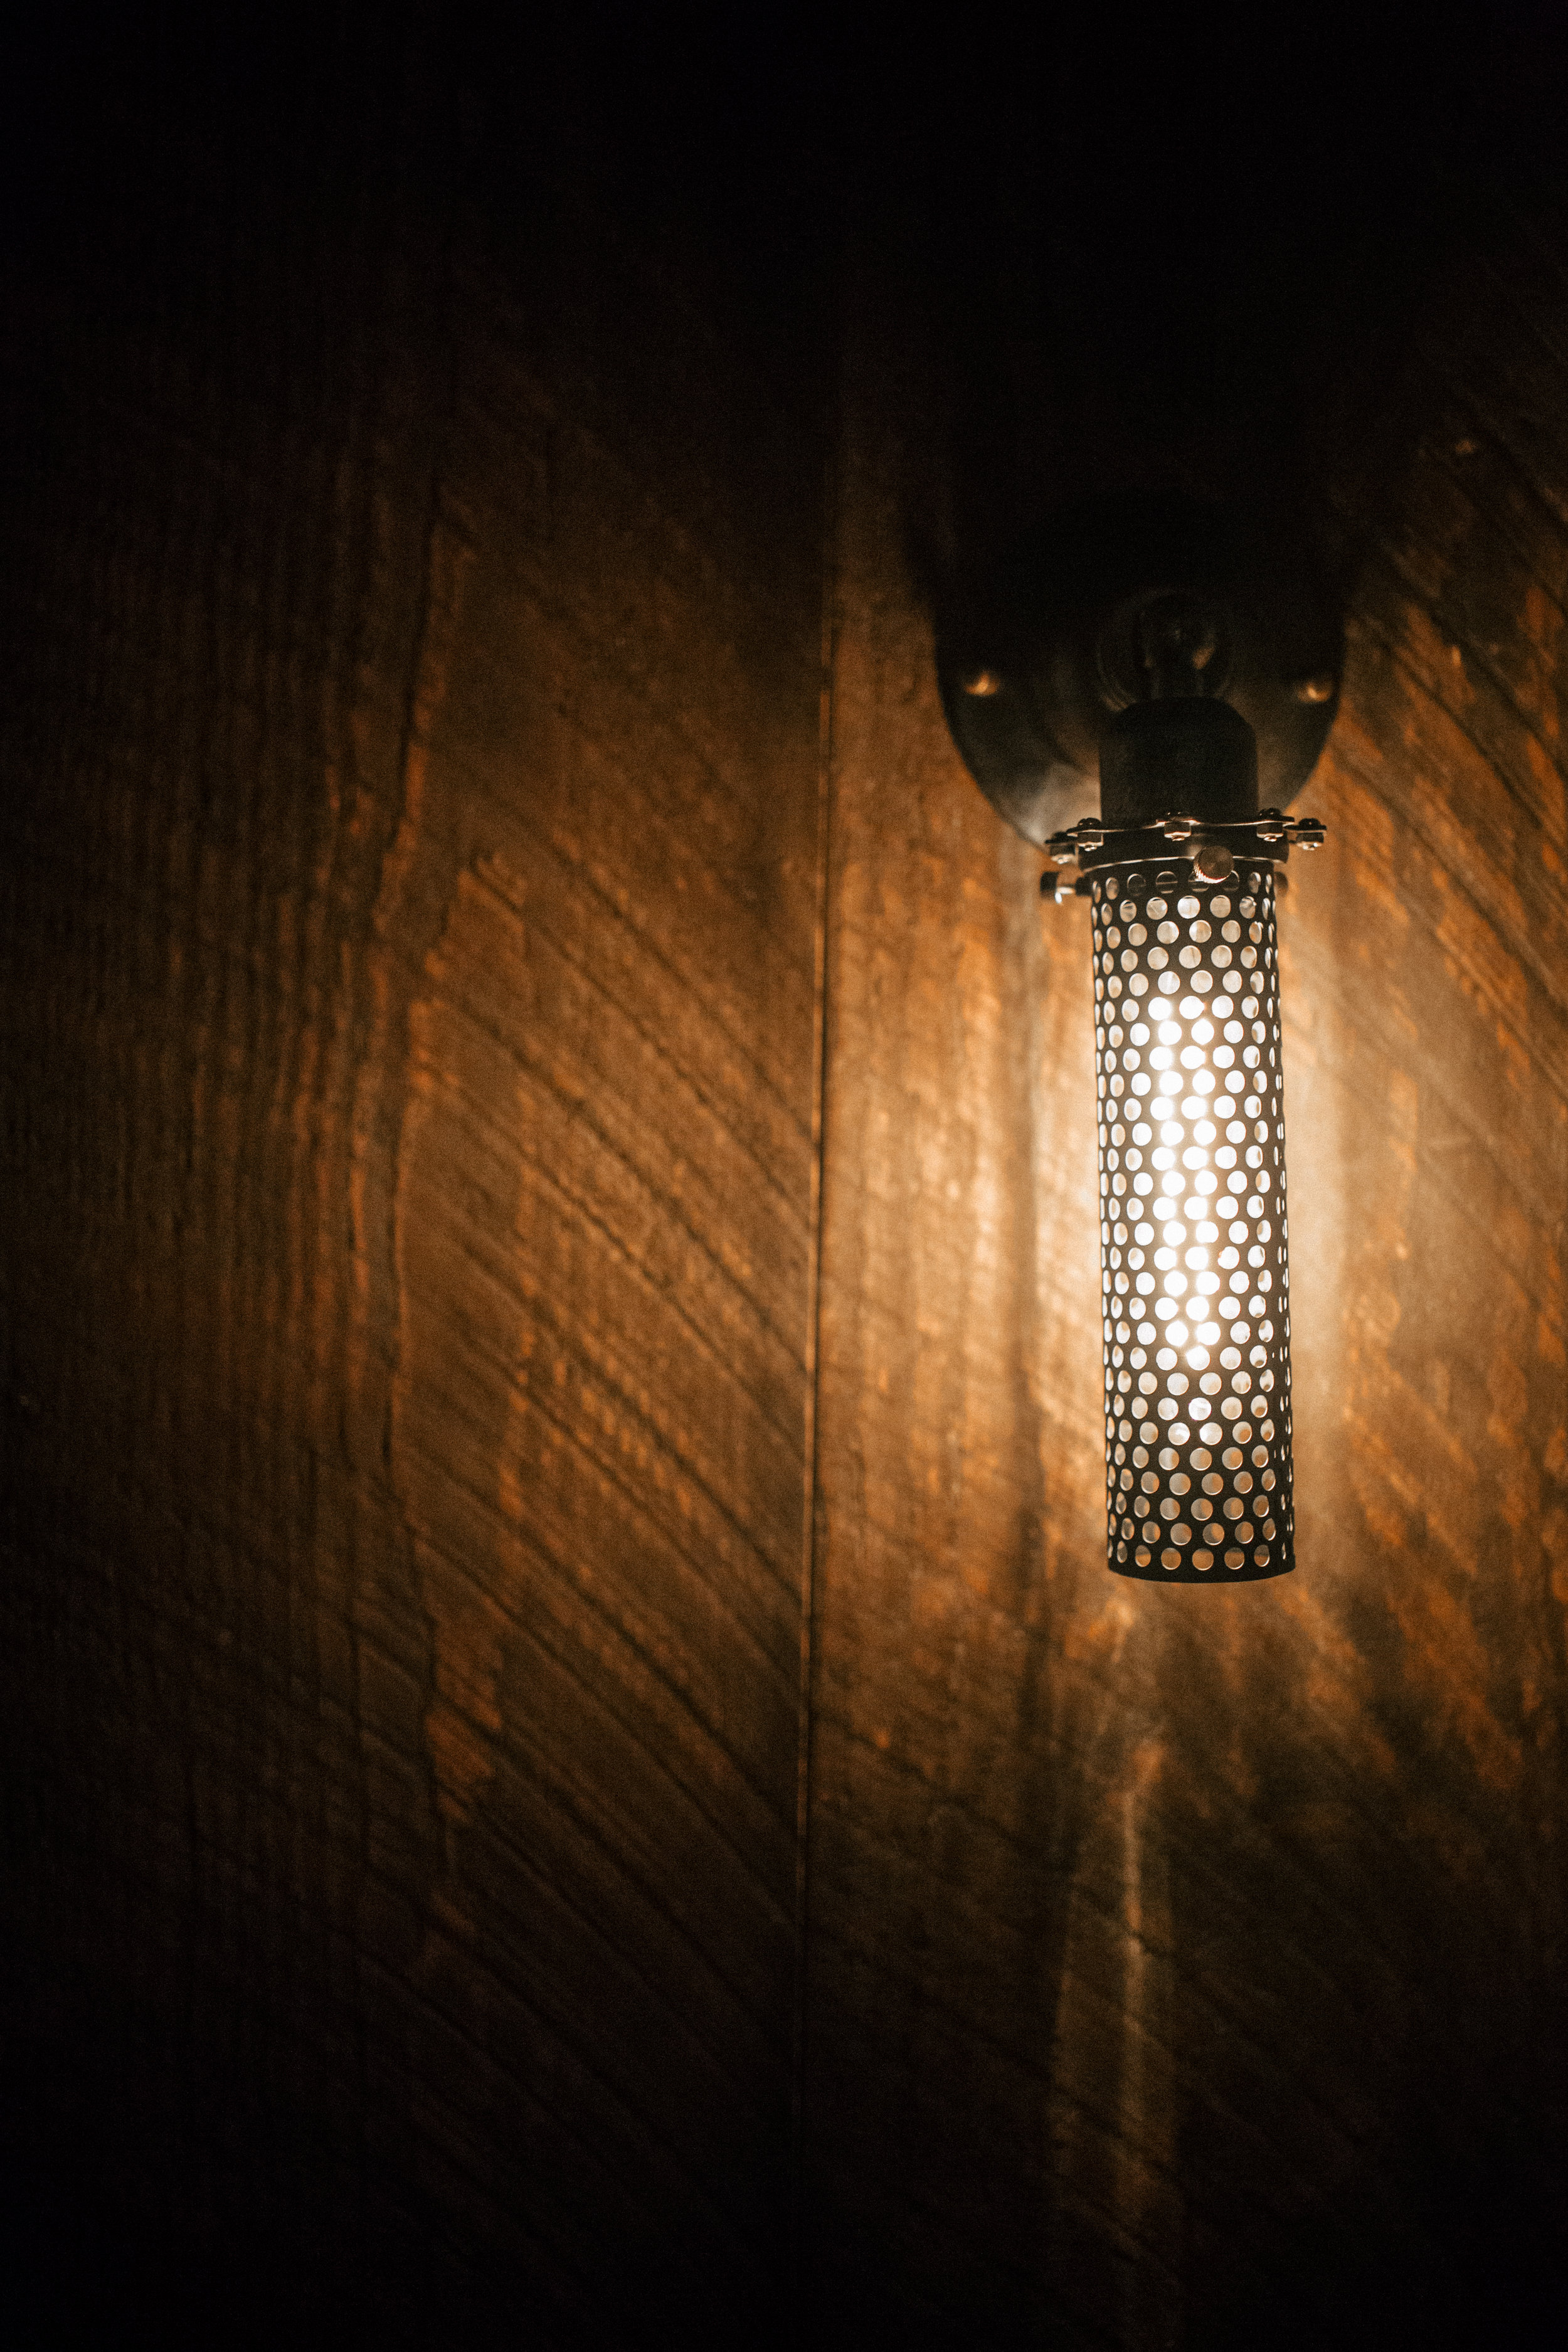 The Rook by Wind River Tiny Homes - Edison bulb sconce lights.